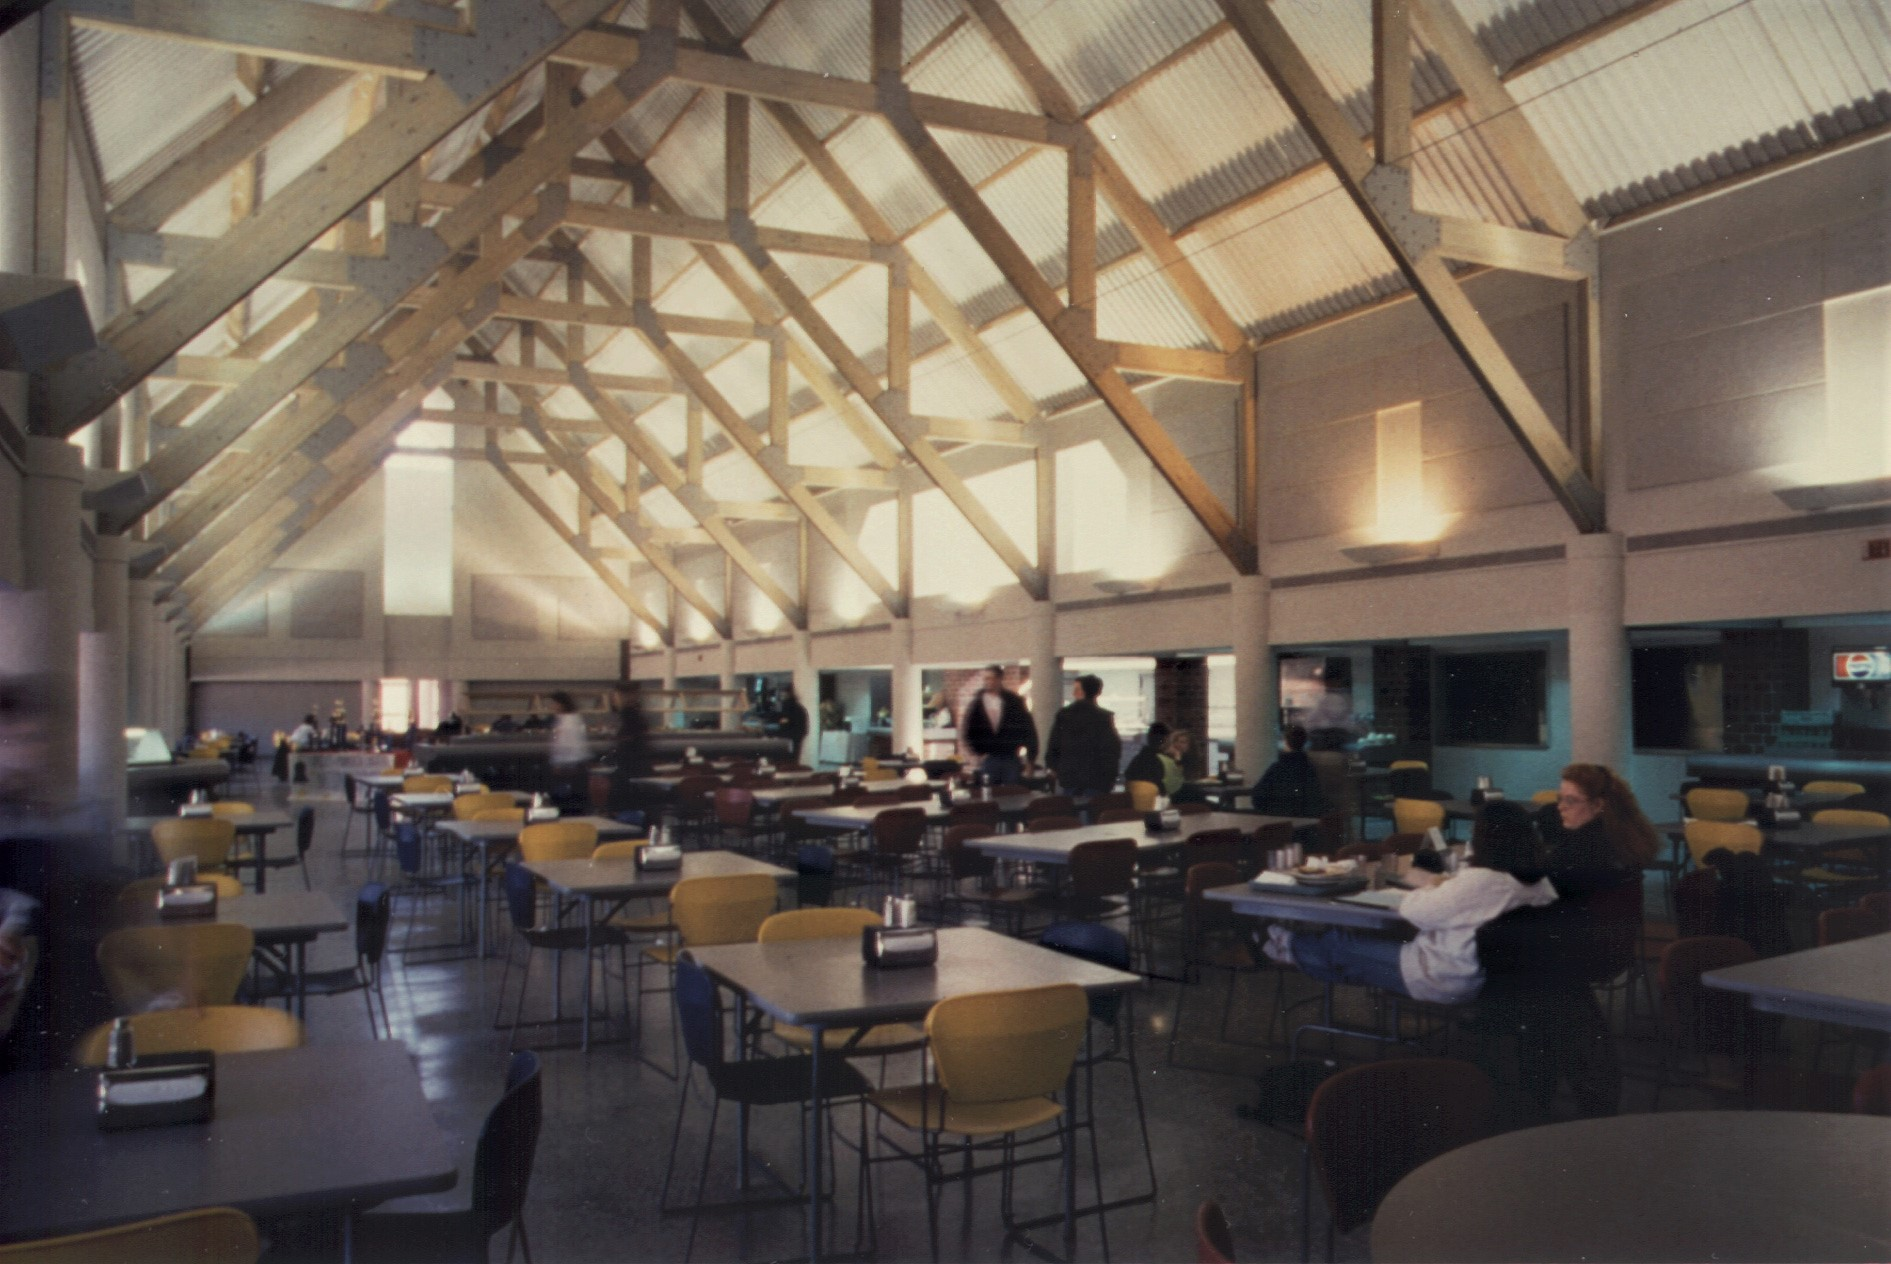 Pittman Dining Hall at Mars Hill University Featured Image